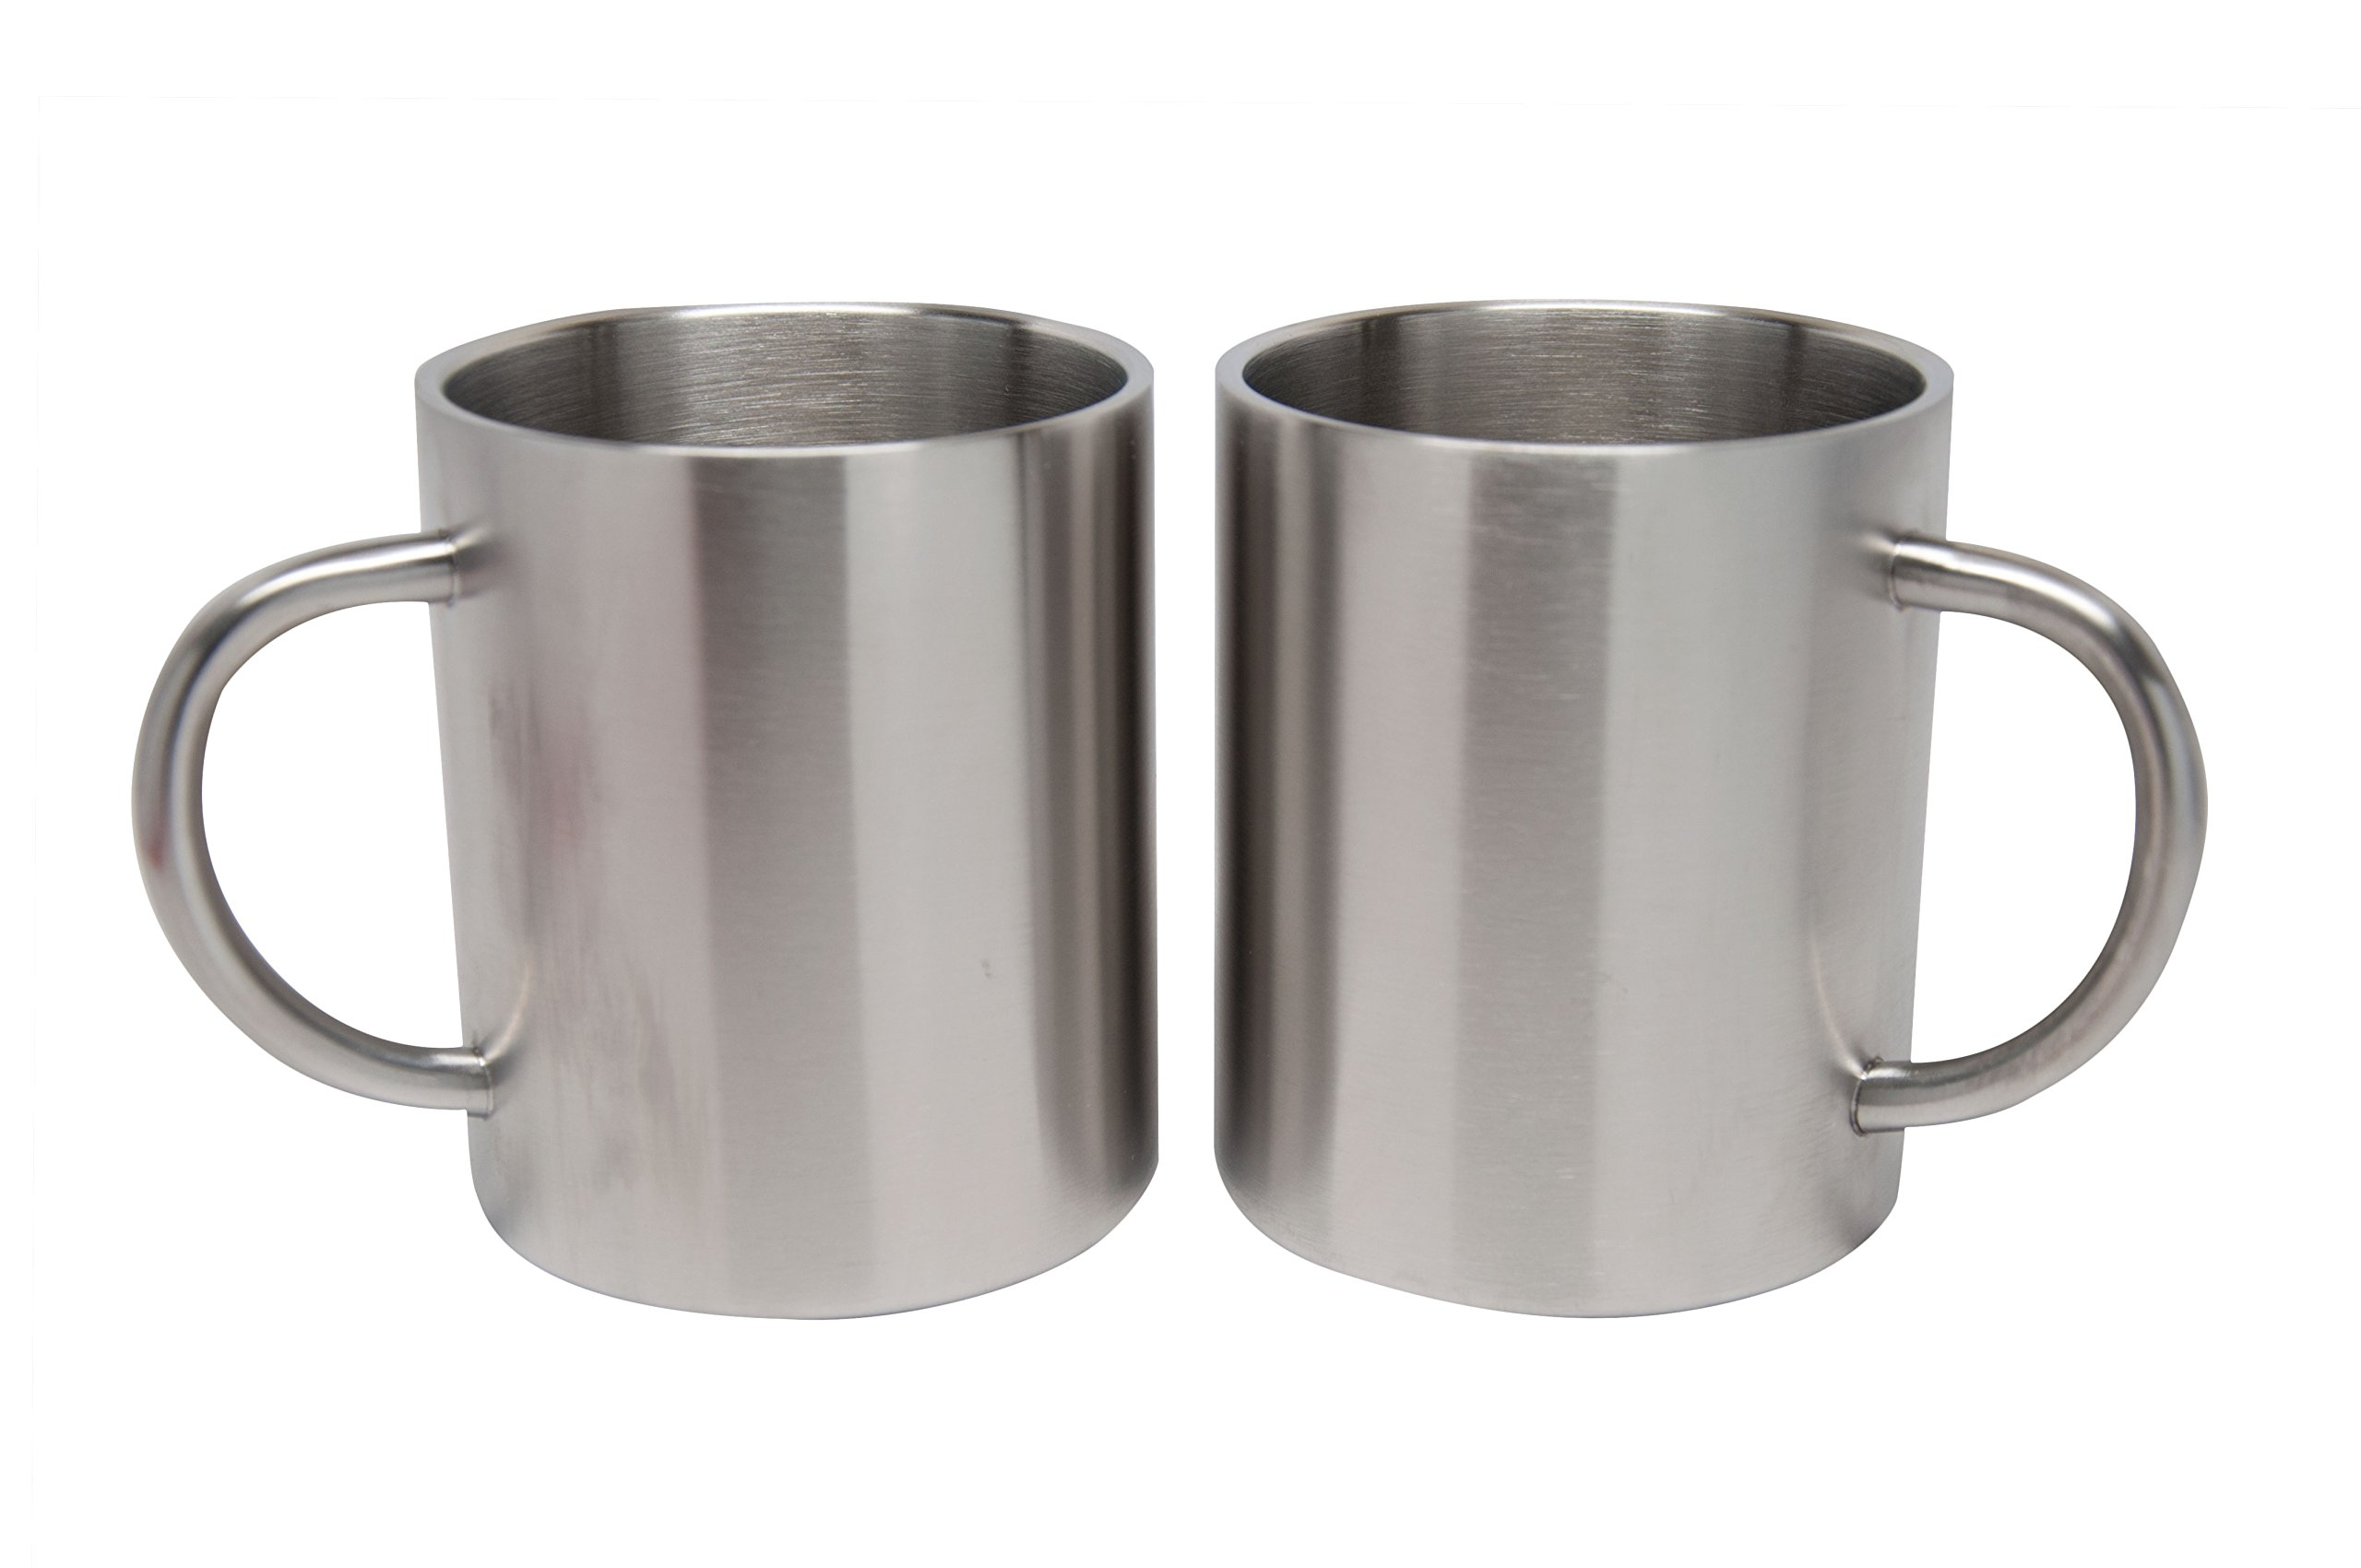 2 Pack Stainless Steel 15 Oz Double Walled Camping Cups 100% BPA Free Metal Mugs Outdoor Camp Cookware Military Surplus BBQ Hunting Accessories Bar BQ 4 Inch by Xena Intelligent Security (Image #2)